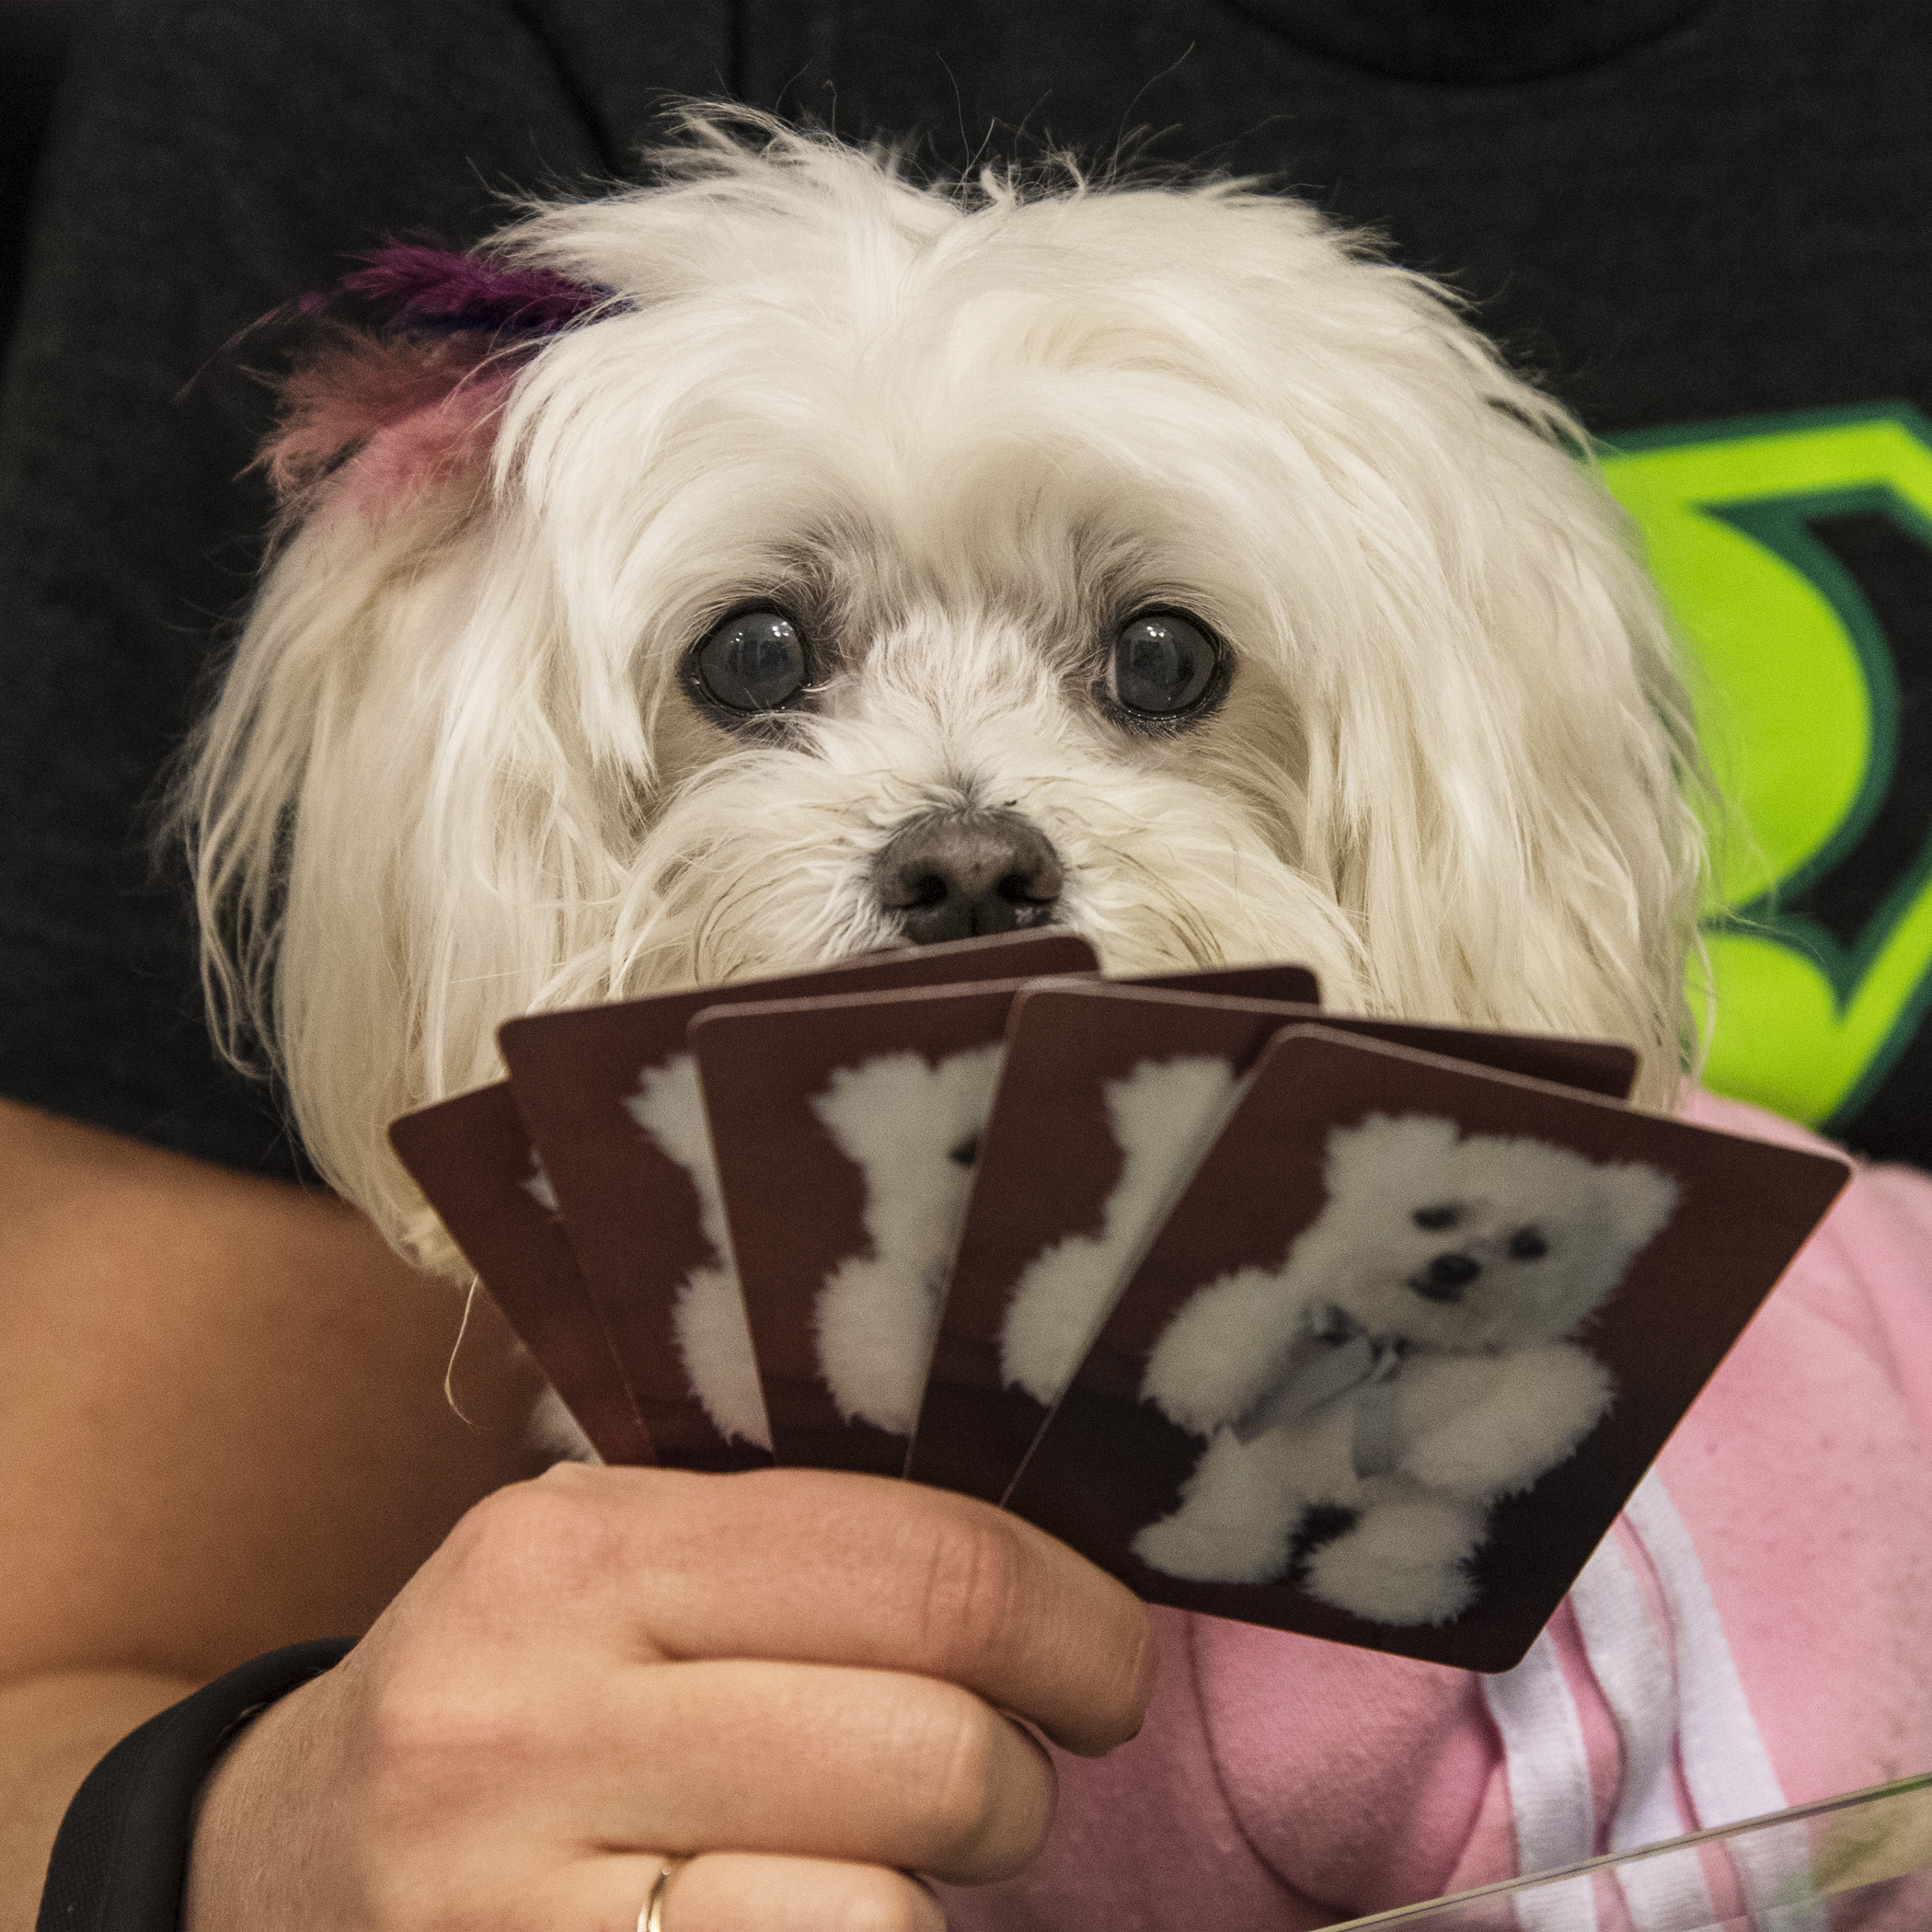 Pebbles was very happy to return home, where the music volume was more controlled and she could share her card shark skills with her Aunt Lori.